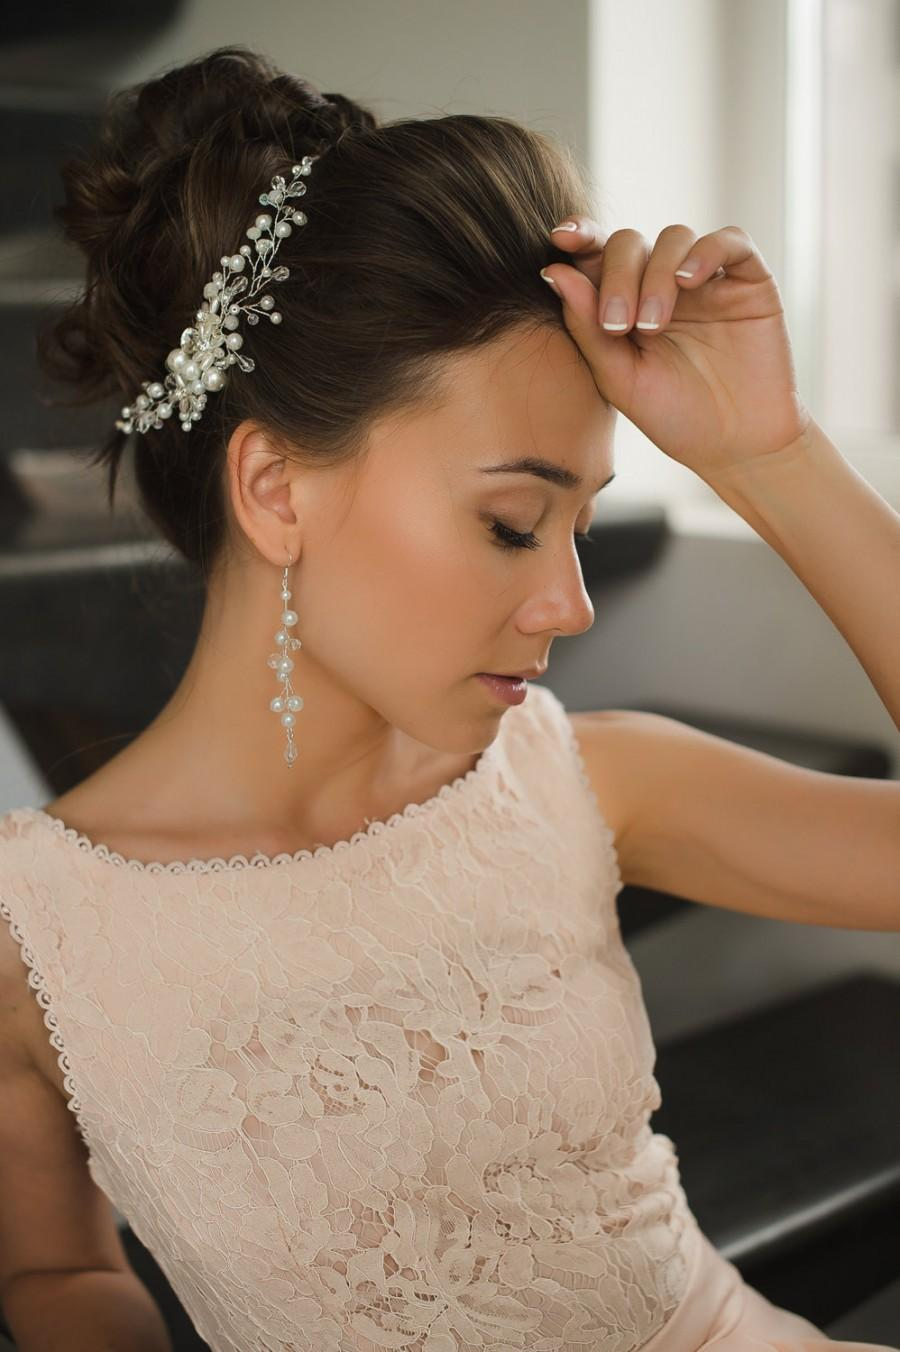 Mariage - Pearl Crystal Bridal Hair Comb Bohemian Wedding Accessories Romantic Beauty Pageant Princess Floral White Hair Clip Headpiece Hairpiece Comb